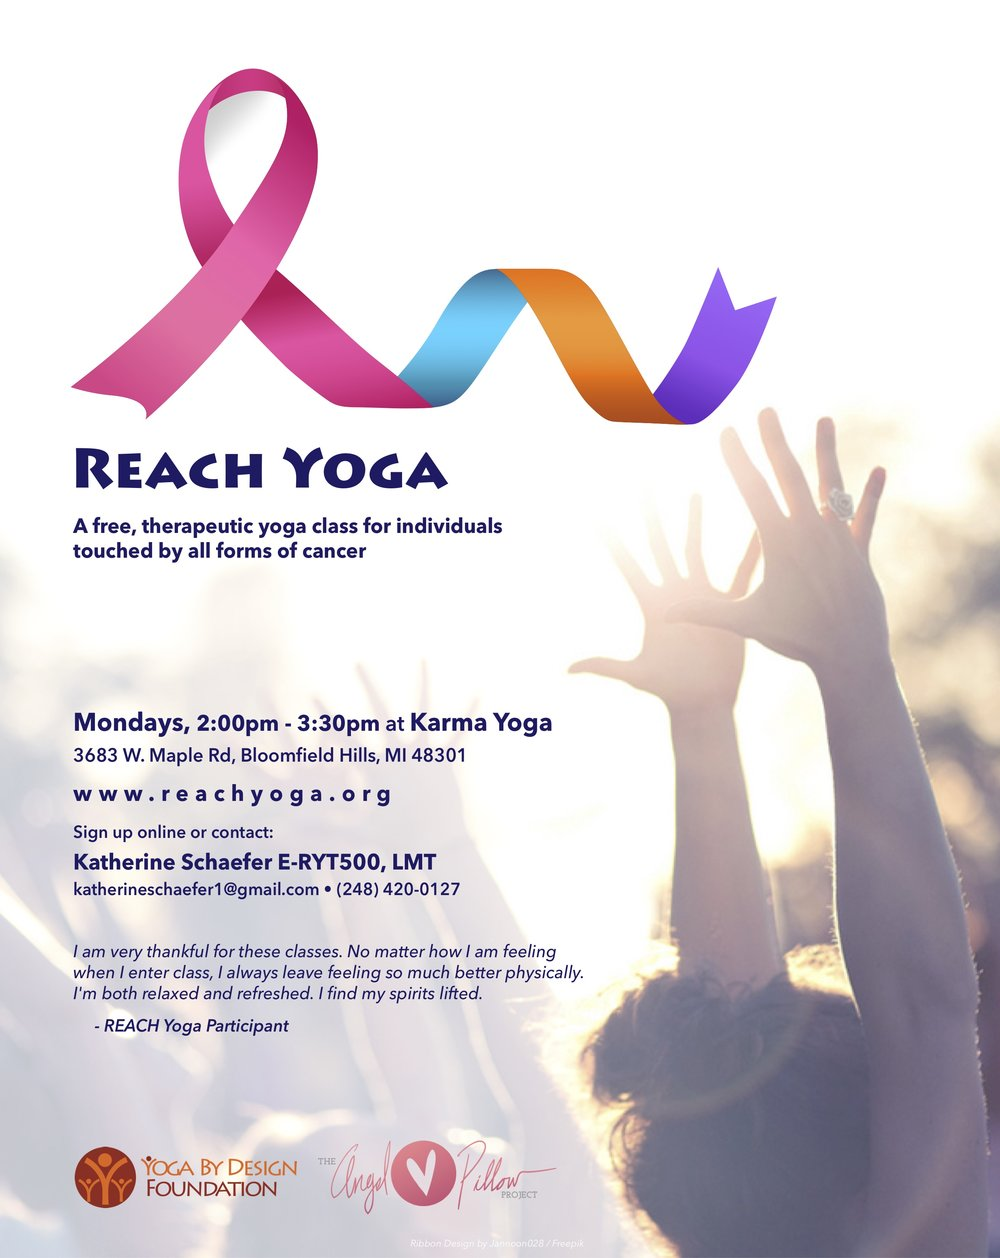 REACH Yoga Flyer.jpg